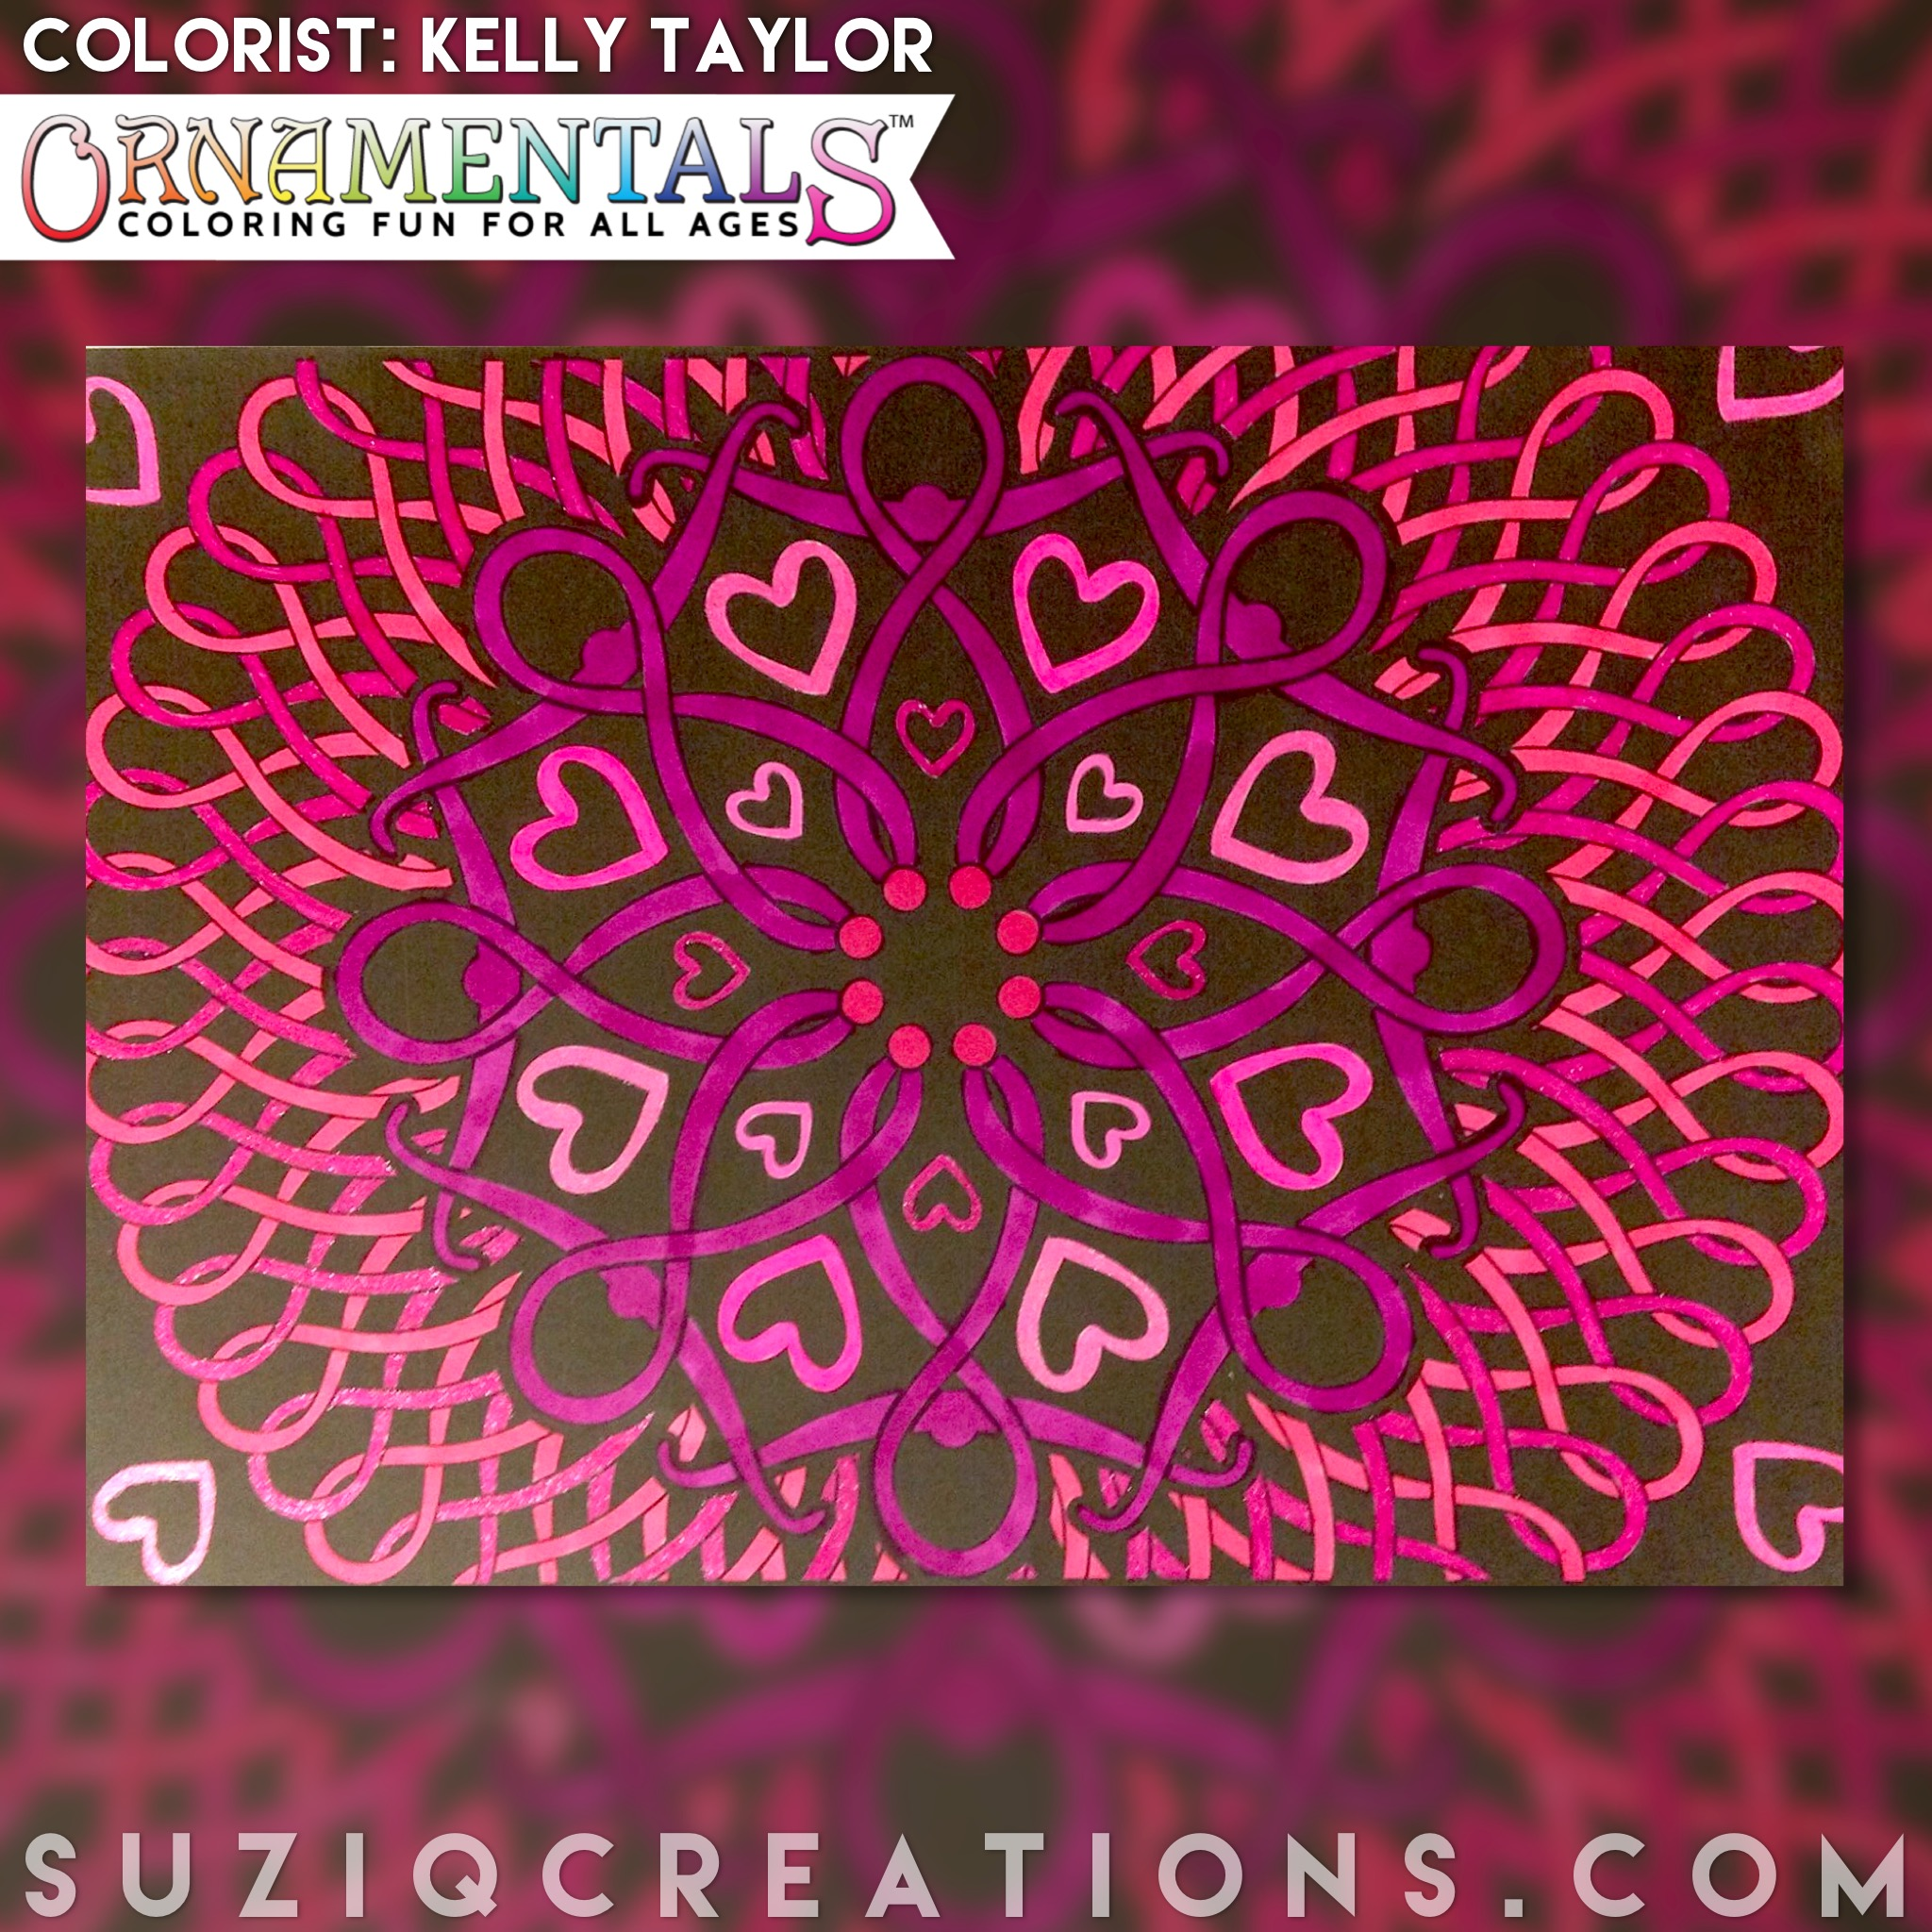 "From <i><a href=""http://www.suziqcreations.com/loa/"">OrnaMENTALs Lights Out</a></i> - colorist Kelly Taylor."